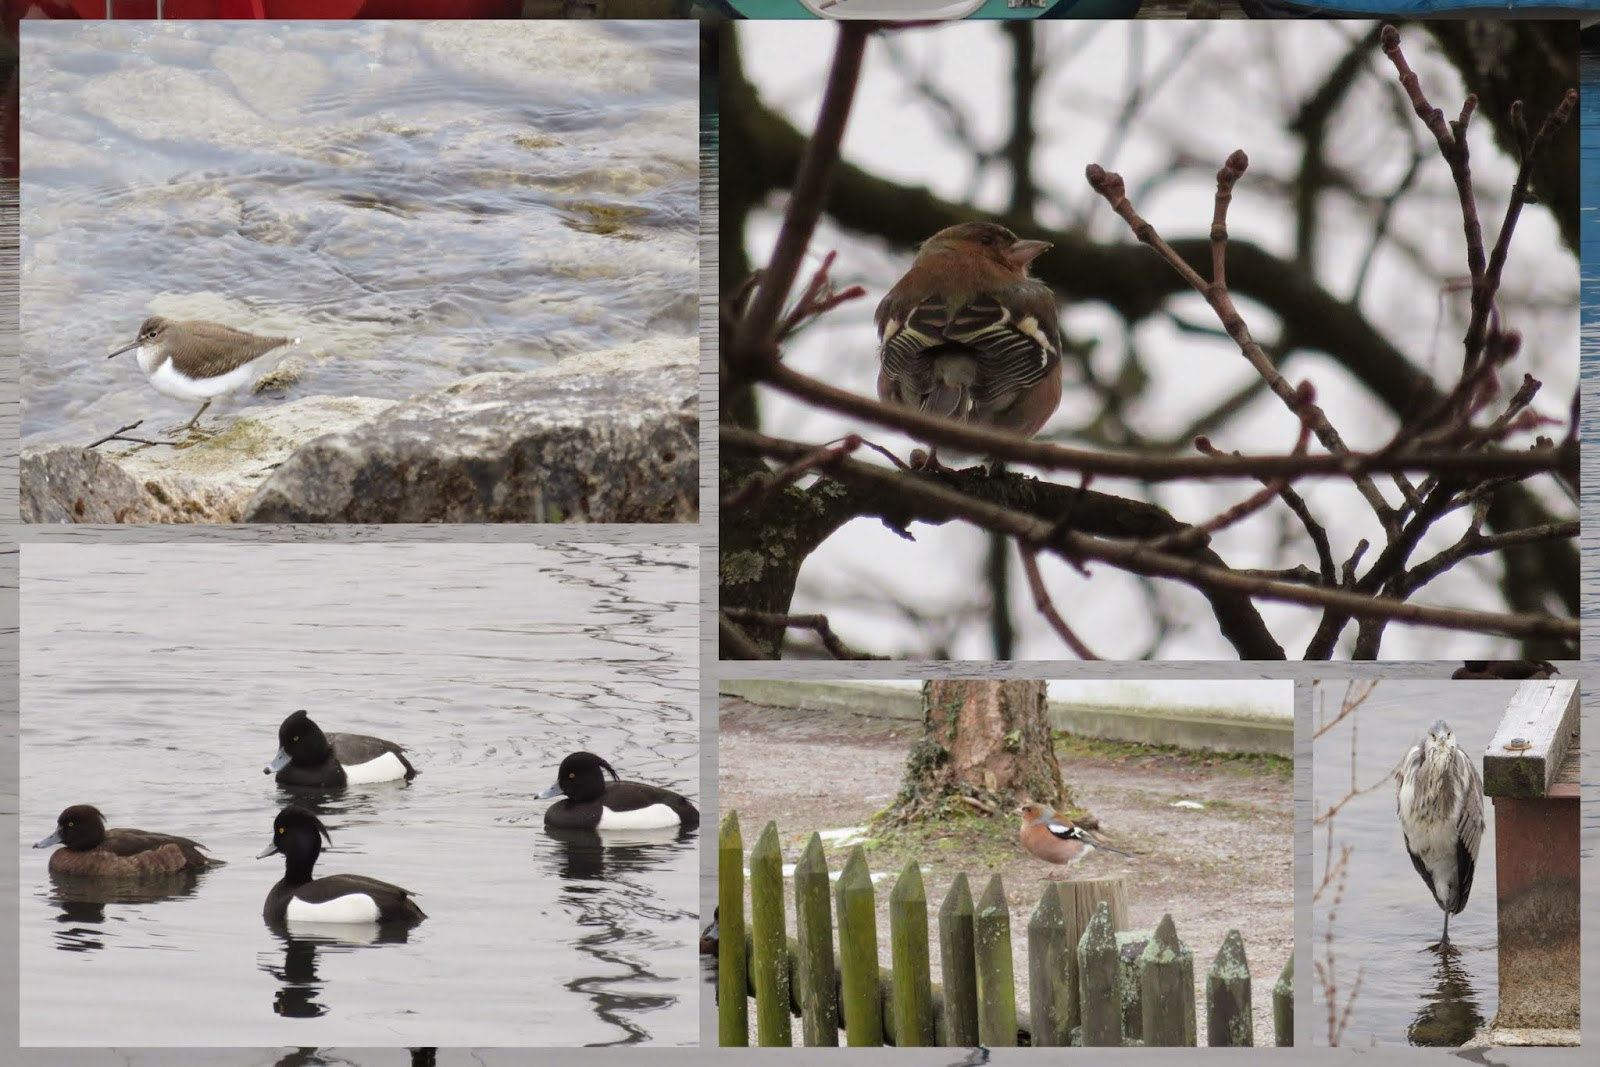 sandpiper, chaffinch, tufted ducks, and heron on Zurich See